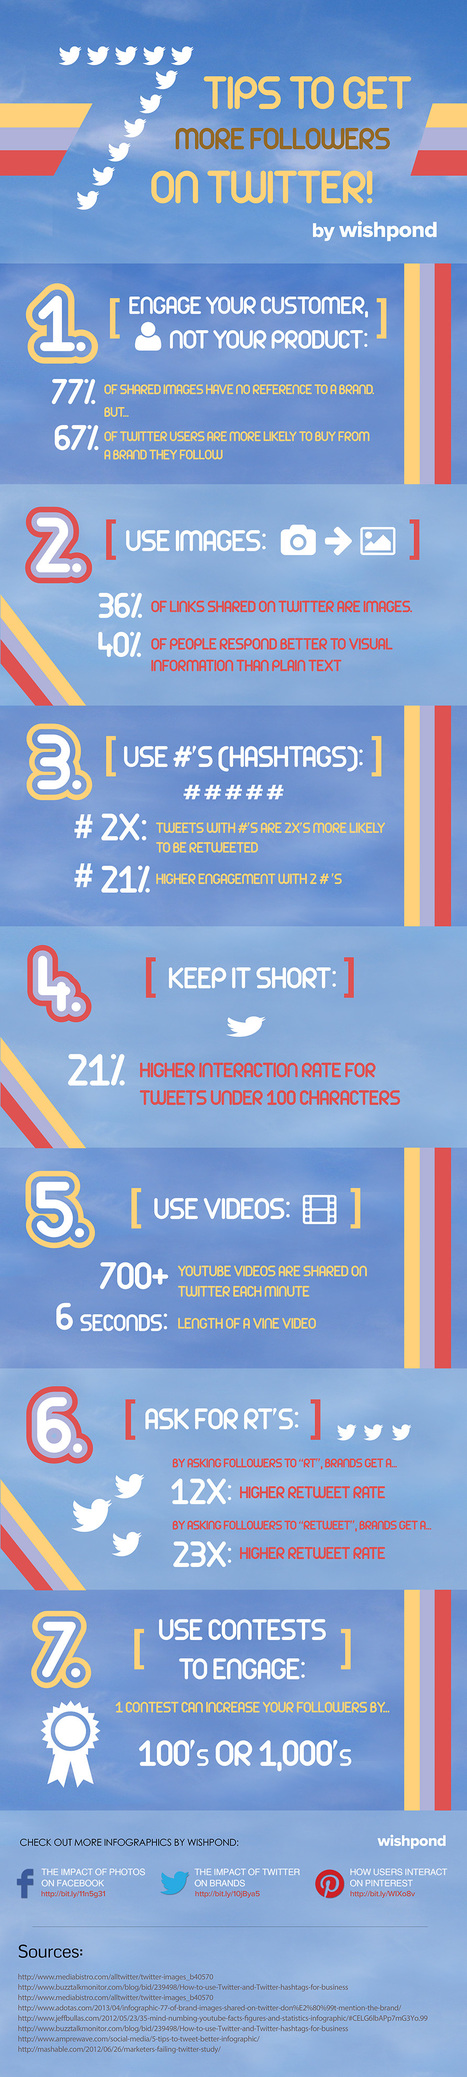 Infographic: 36% of all shared links on Twitter are photos | Guerrilla Social Media | Scoop.it